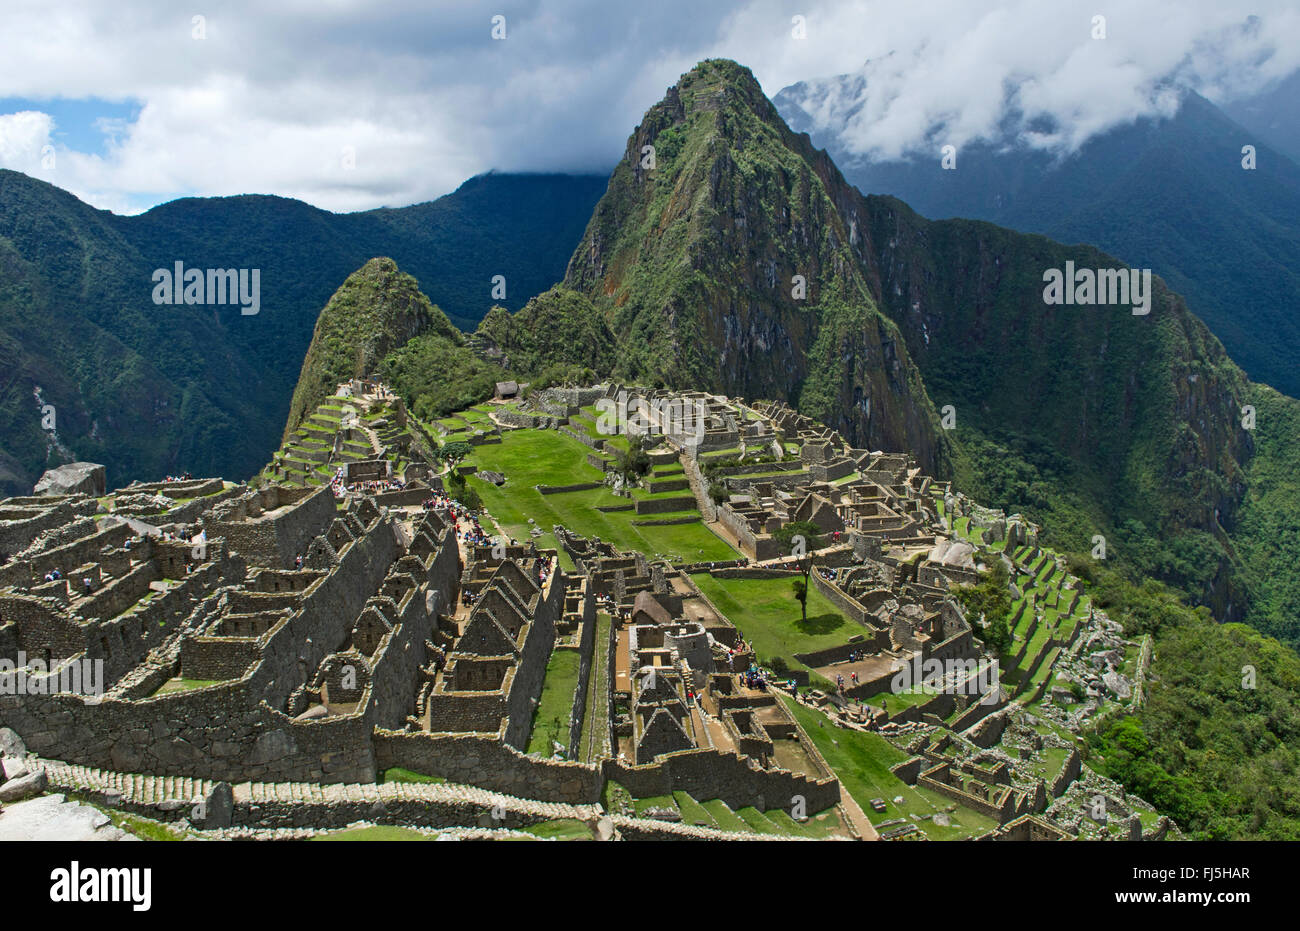 Machu Picchu famous ruins from above in Peru from Inca history, Peru - Stock Image